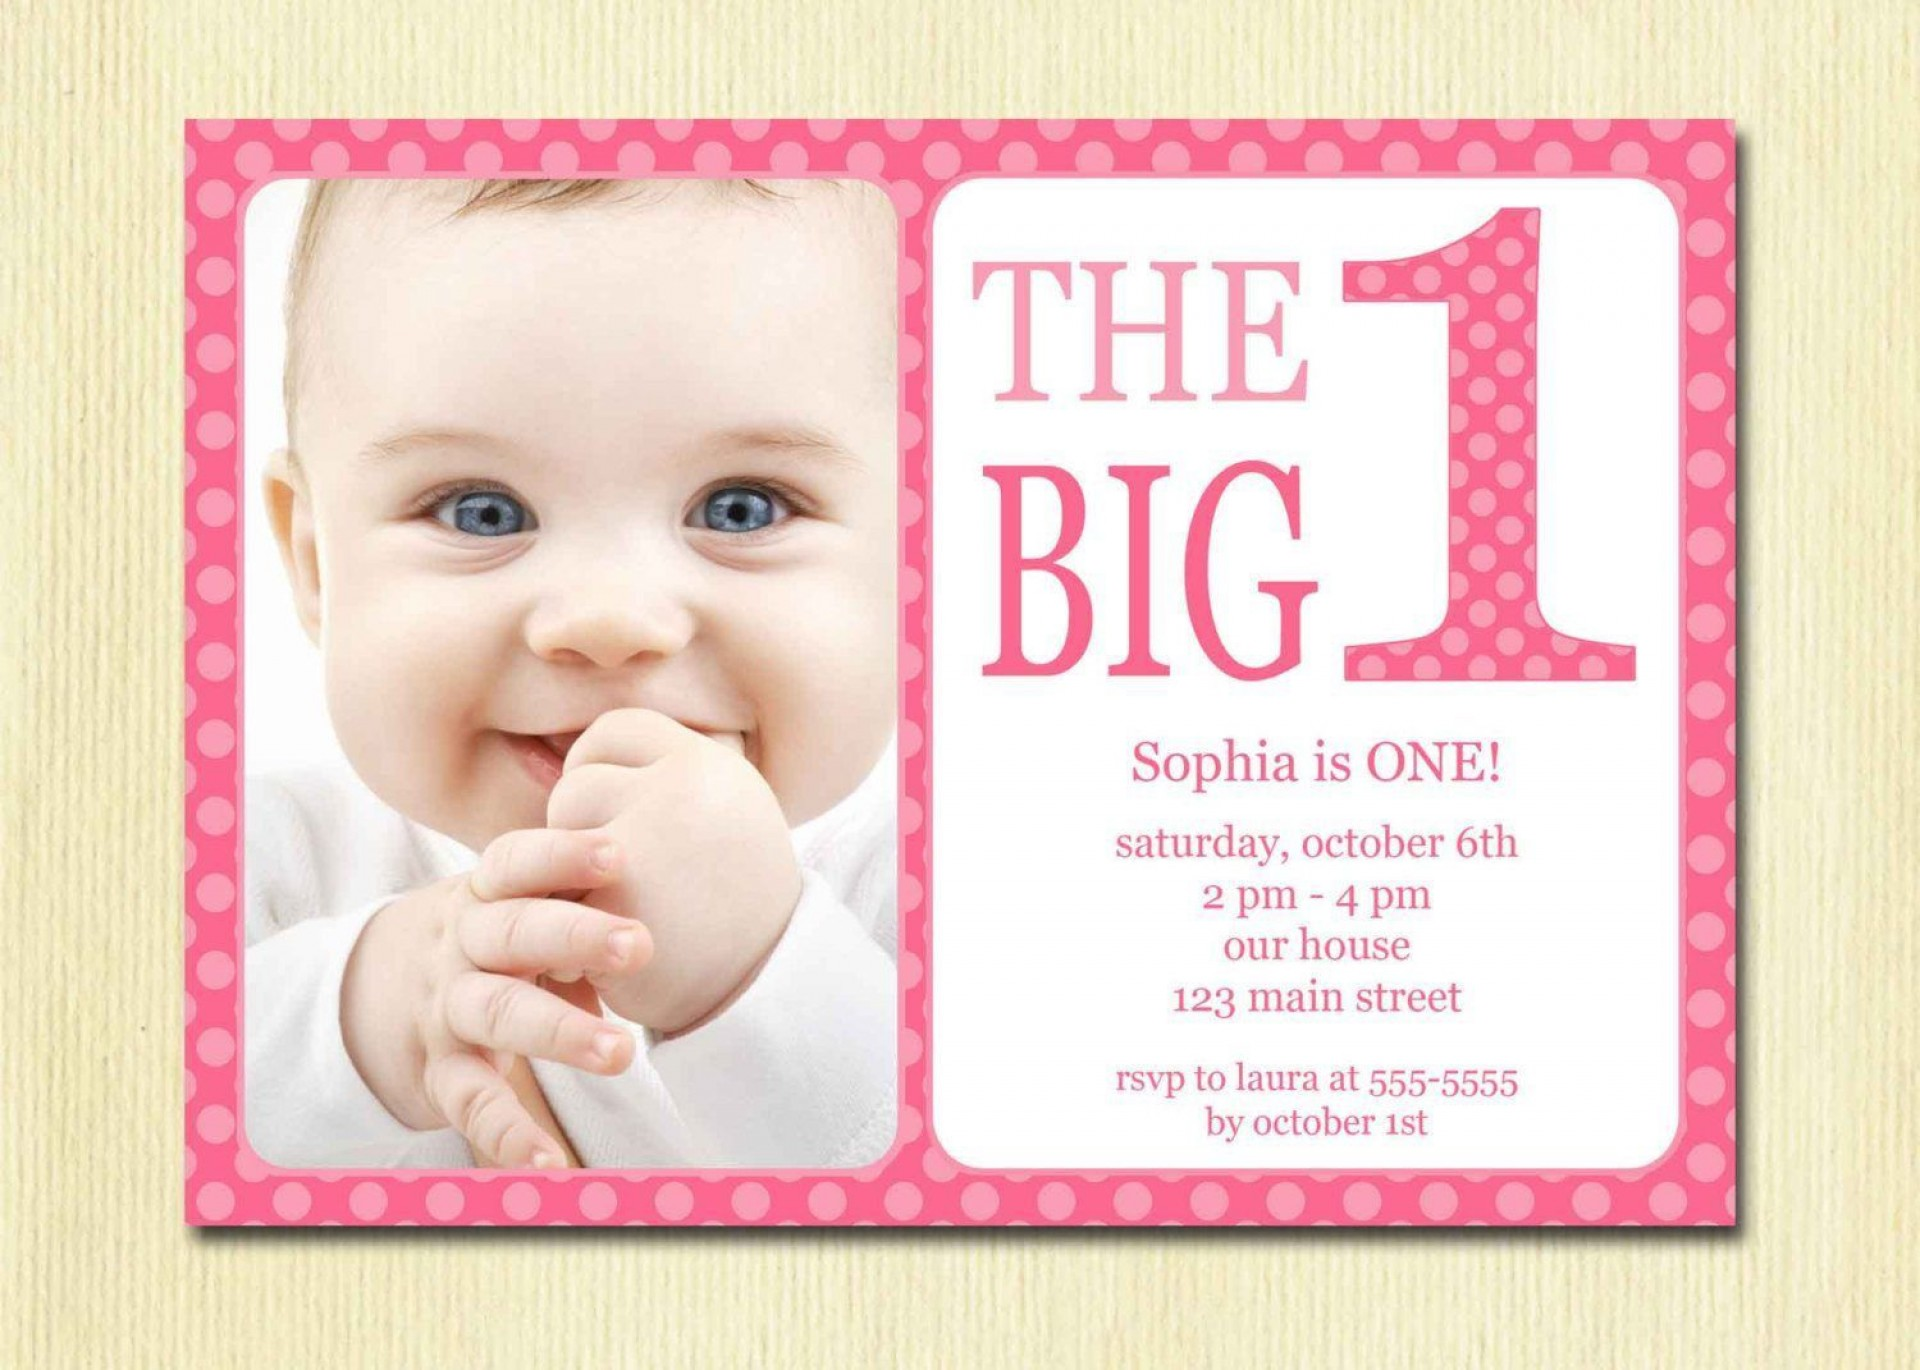 002 Exceptional 1st Birthday Invitation Template Image  Background Design Blank For Girl First Baby Boy Free Download Indian1920